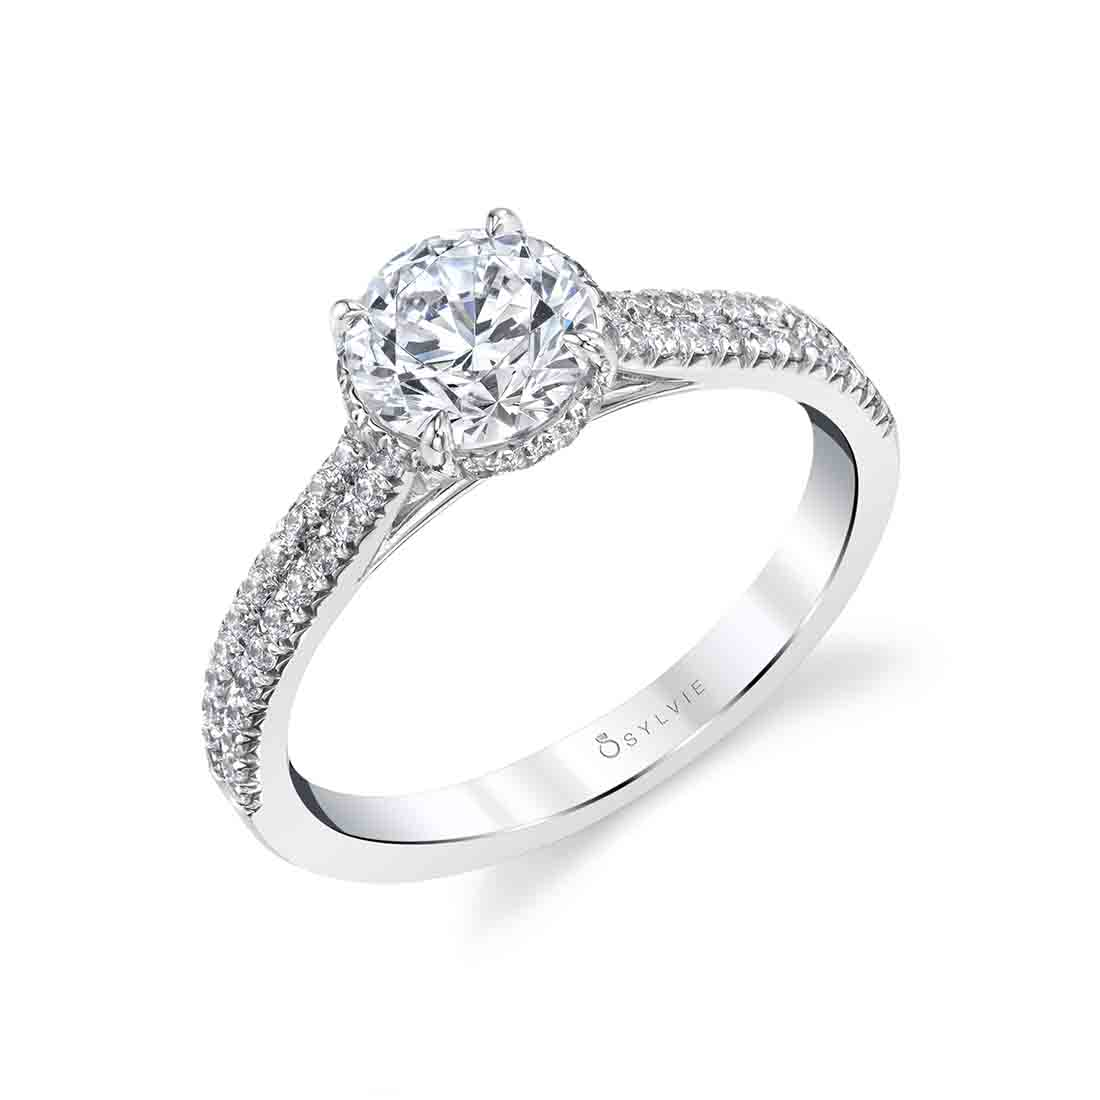 Hidden Halo Engagement Ring in White Gold - S1842 - Giovanna